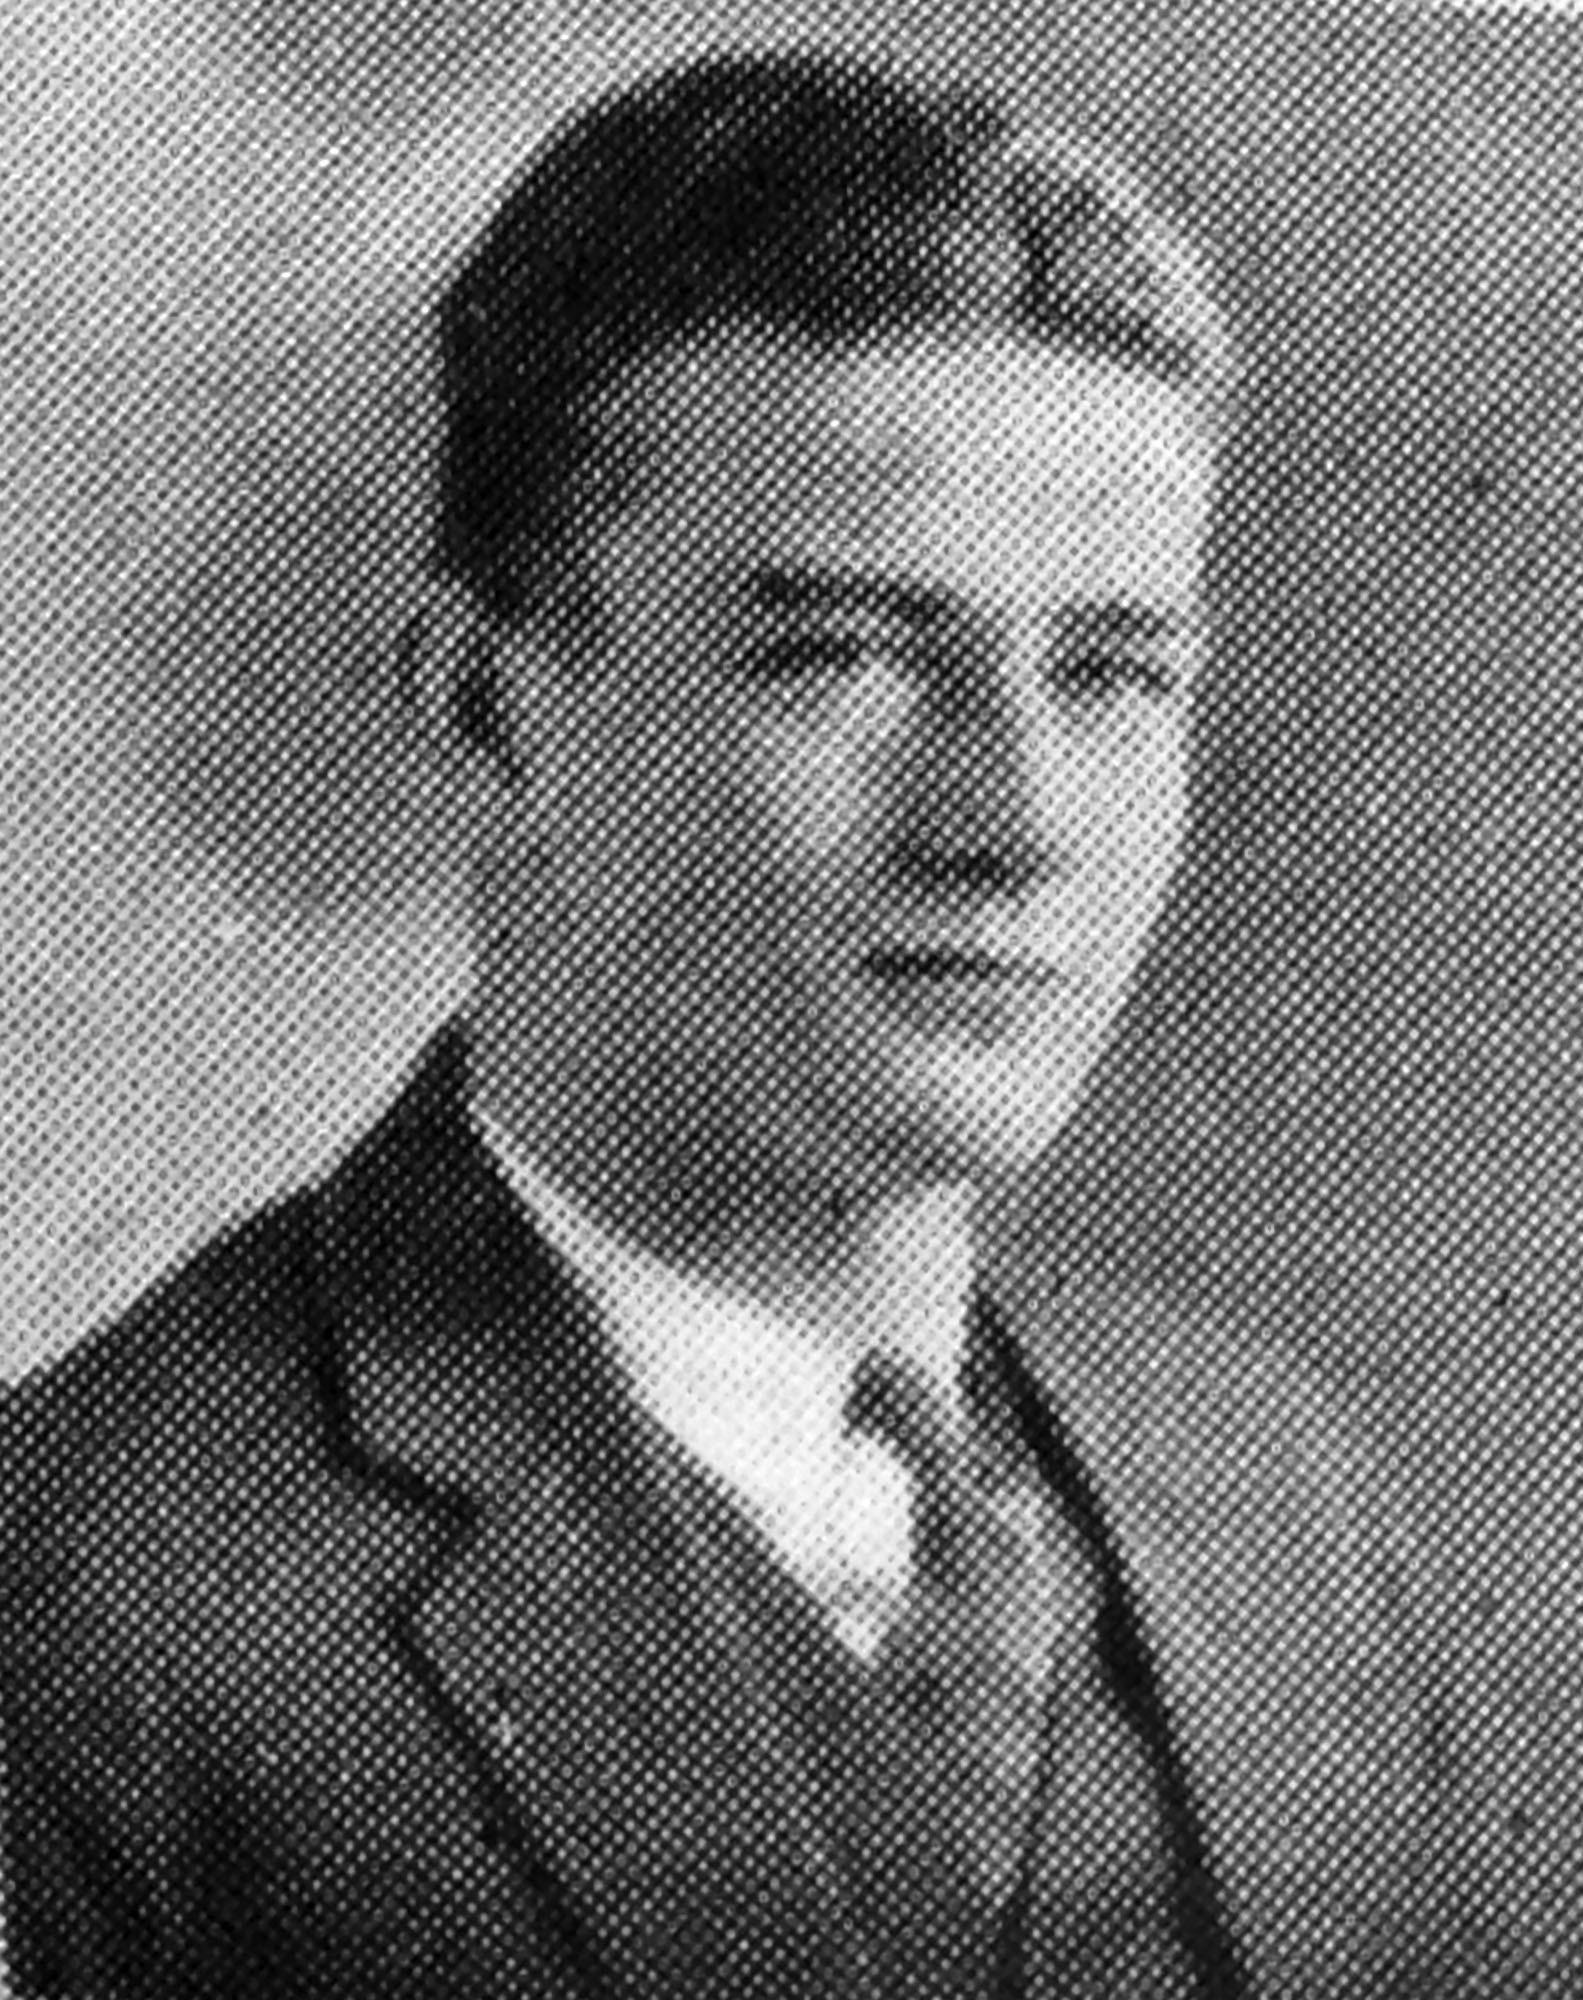 John Wayne's senior photo in the 1925 yearbook from Glendale High when he was known as Marion Morrison.